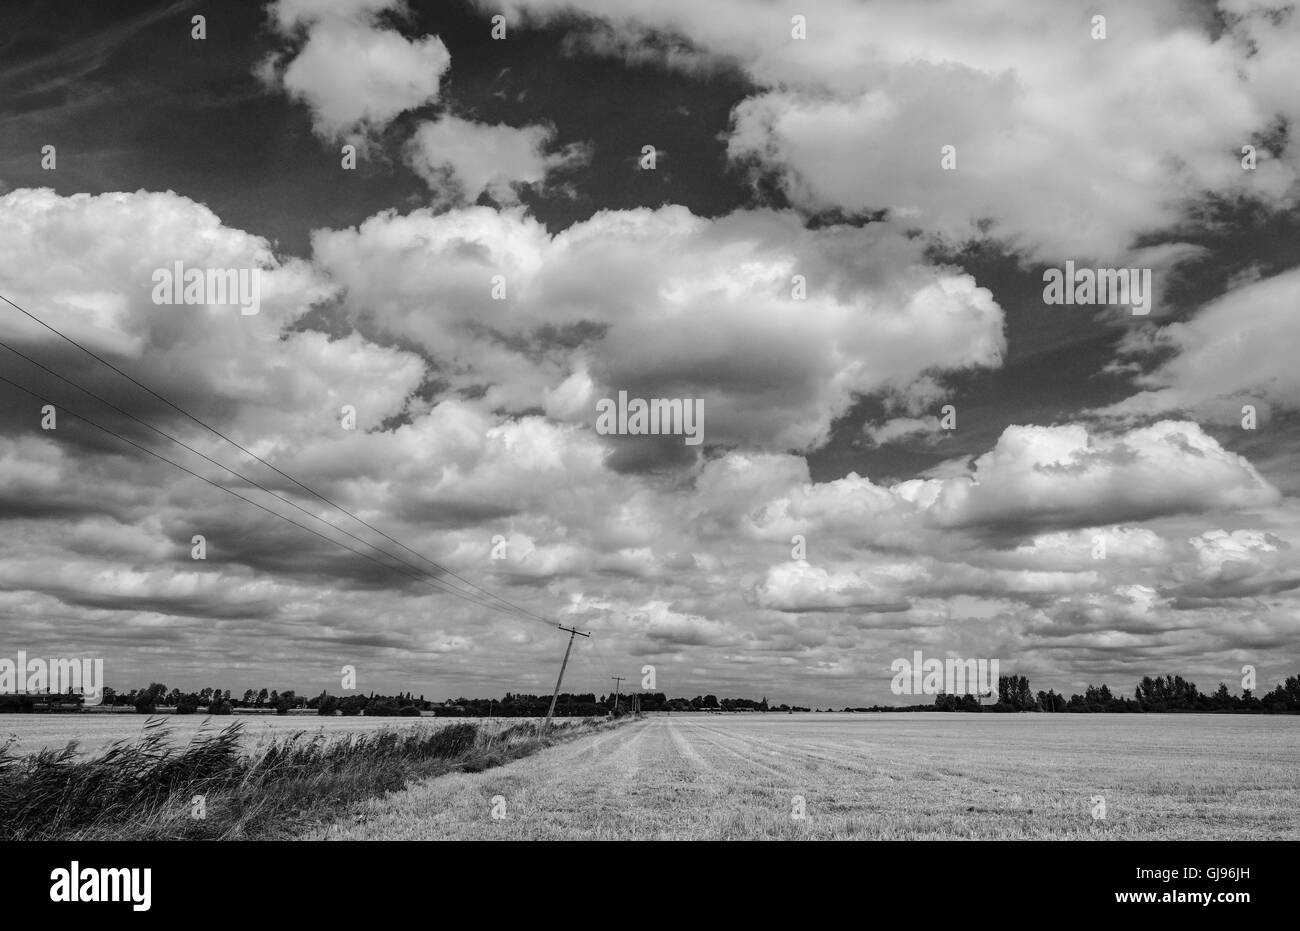 Summer cloudscape above a wheat field in summer, also showing power cables suspended from a bent power pole. - Stock Image